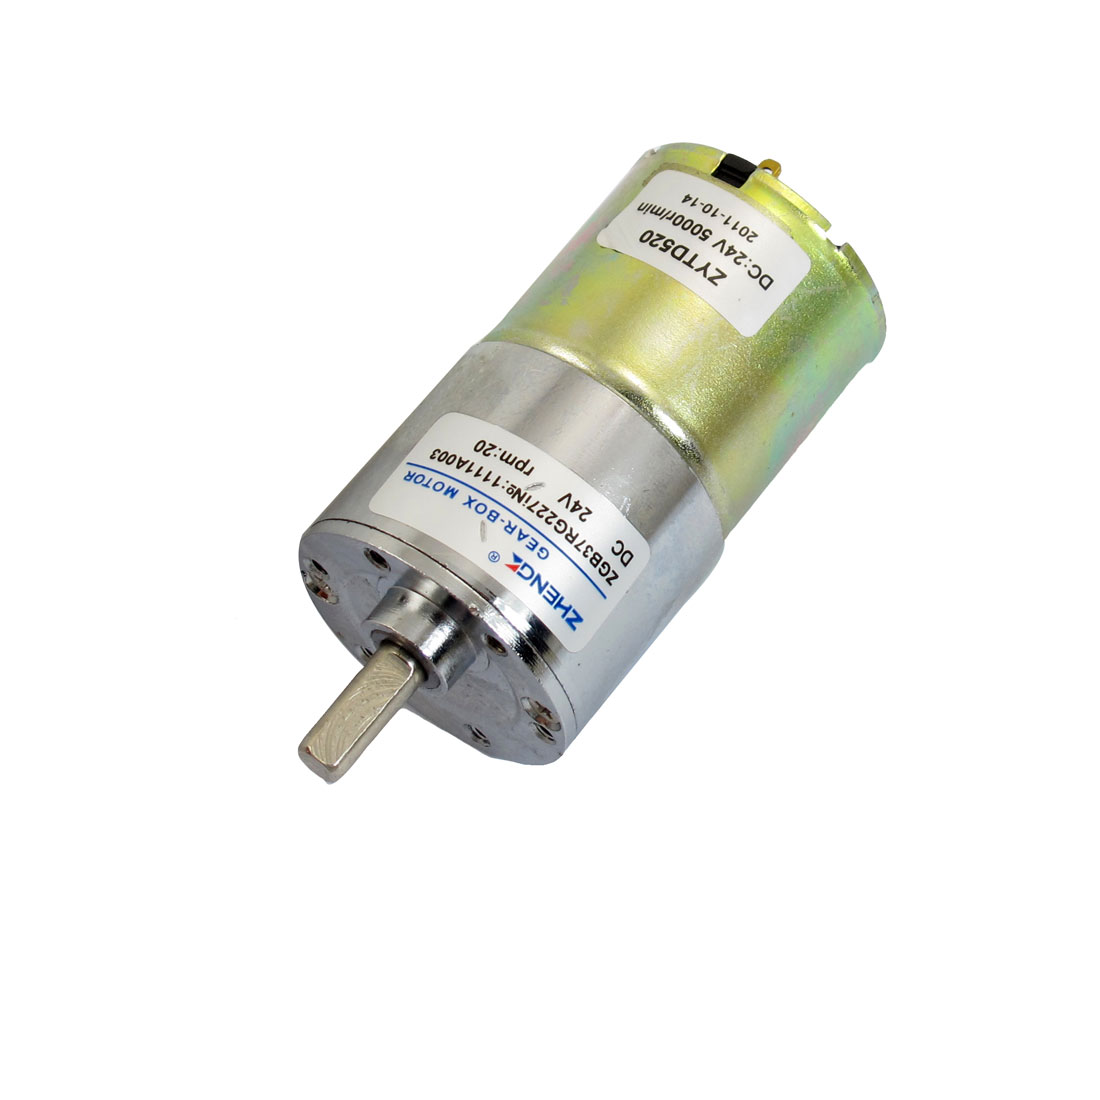 DC 24V 20r/min Output Speed Cylinder Shaped Oven Geared Motor